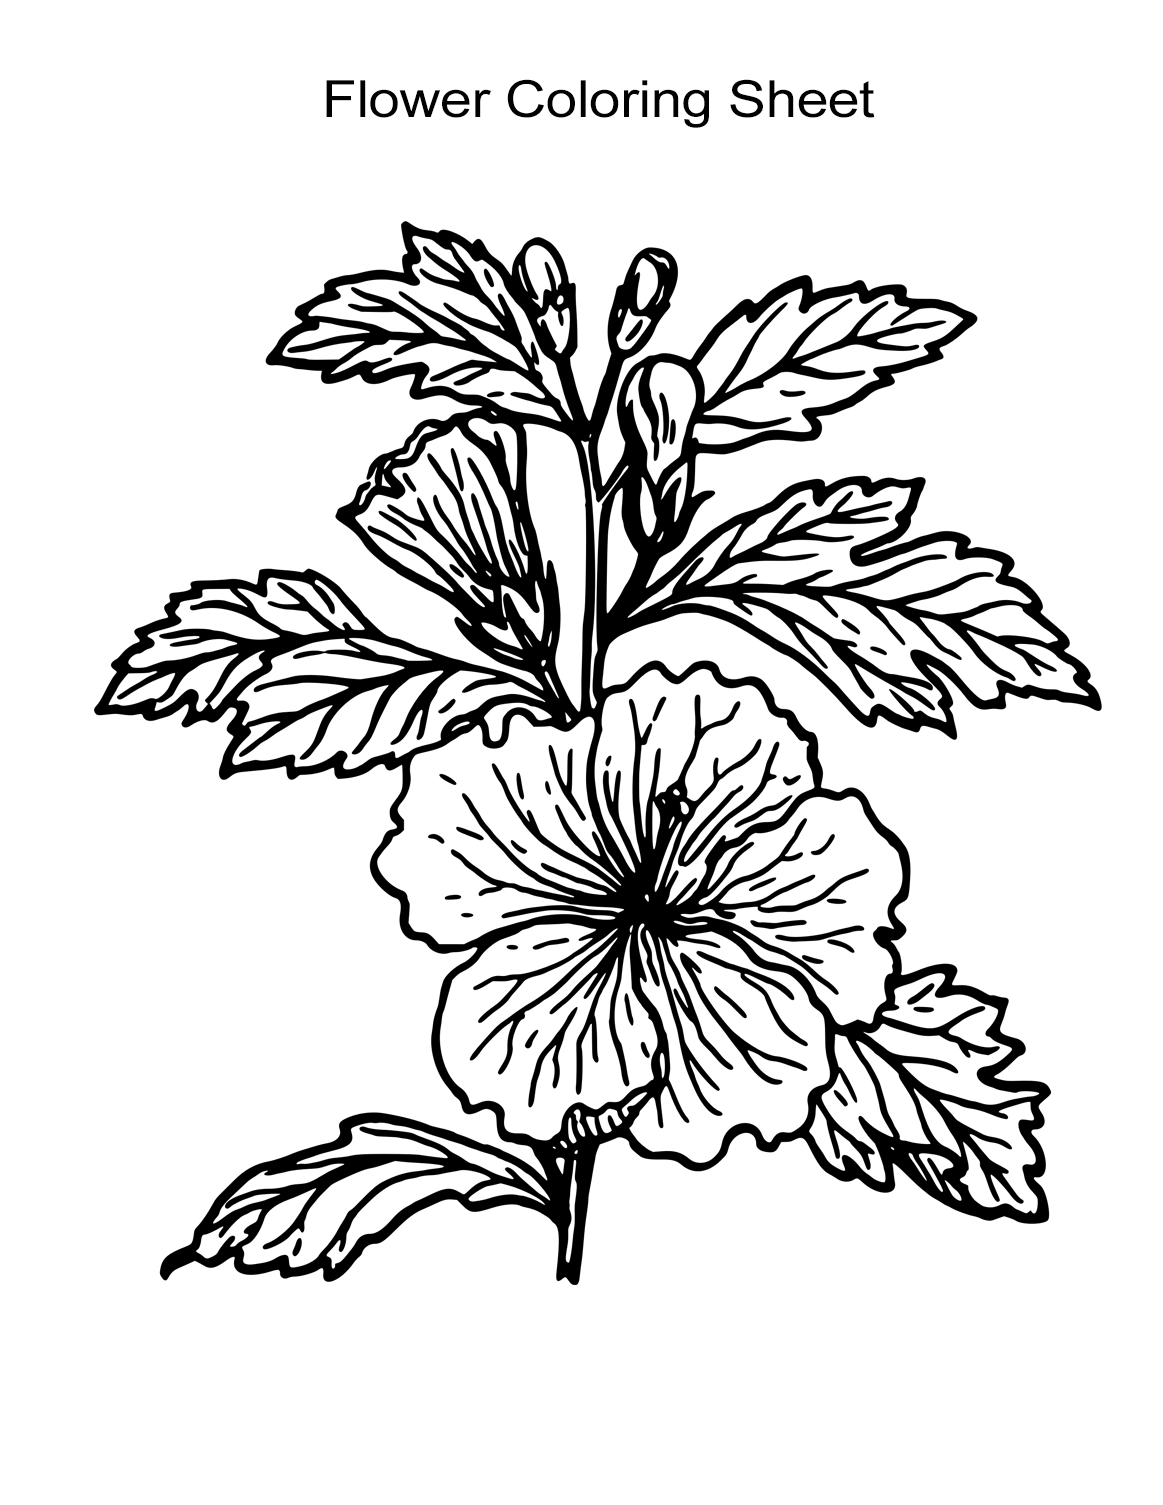 coloring image of a flower poppy flowers coloring pages download and print for free a image of flower coloring